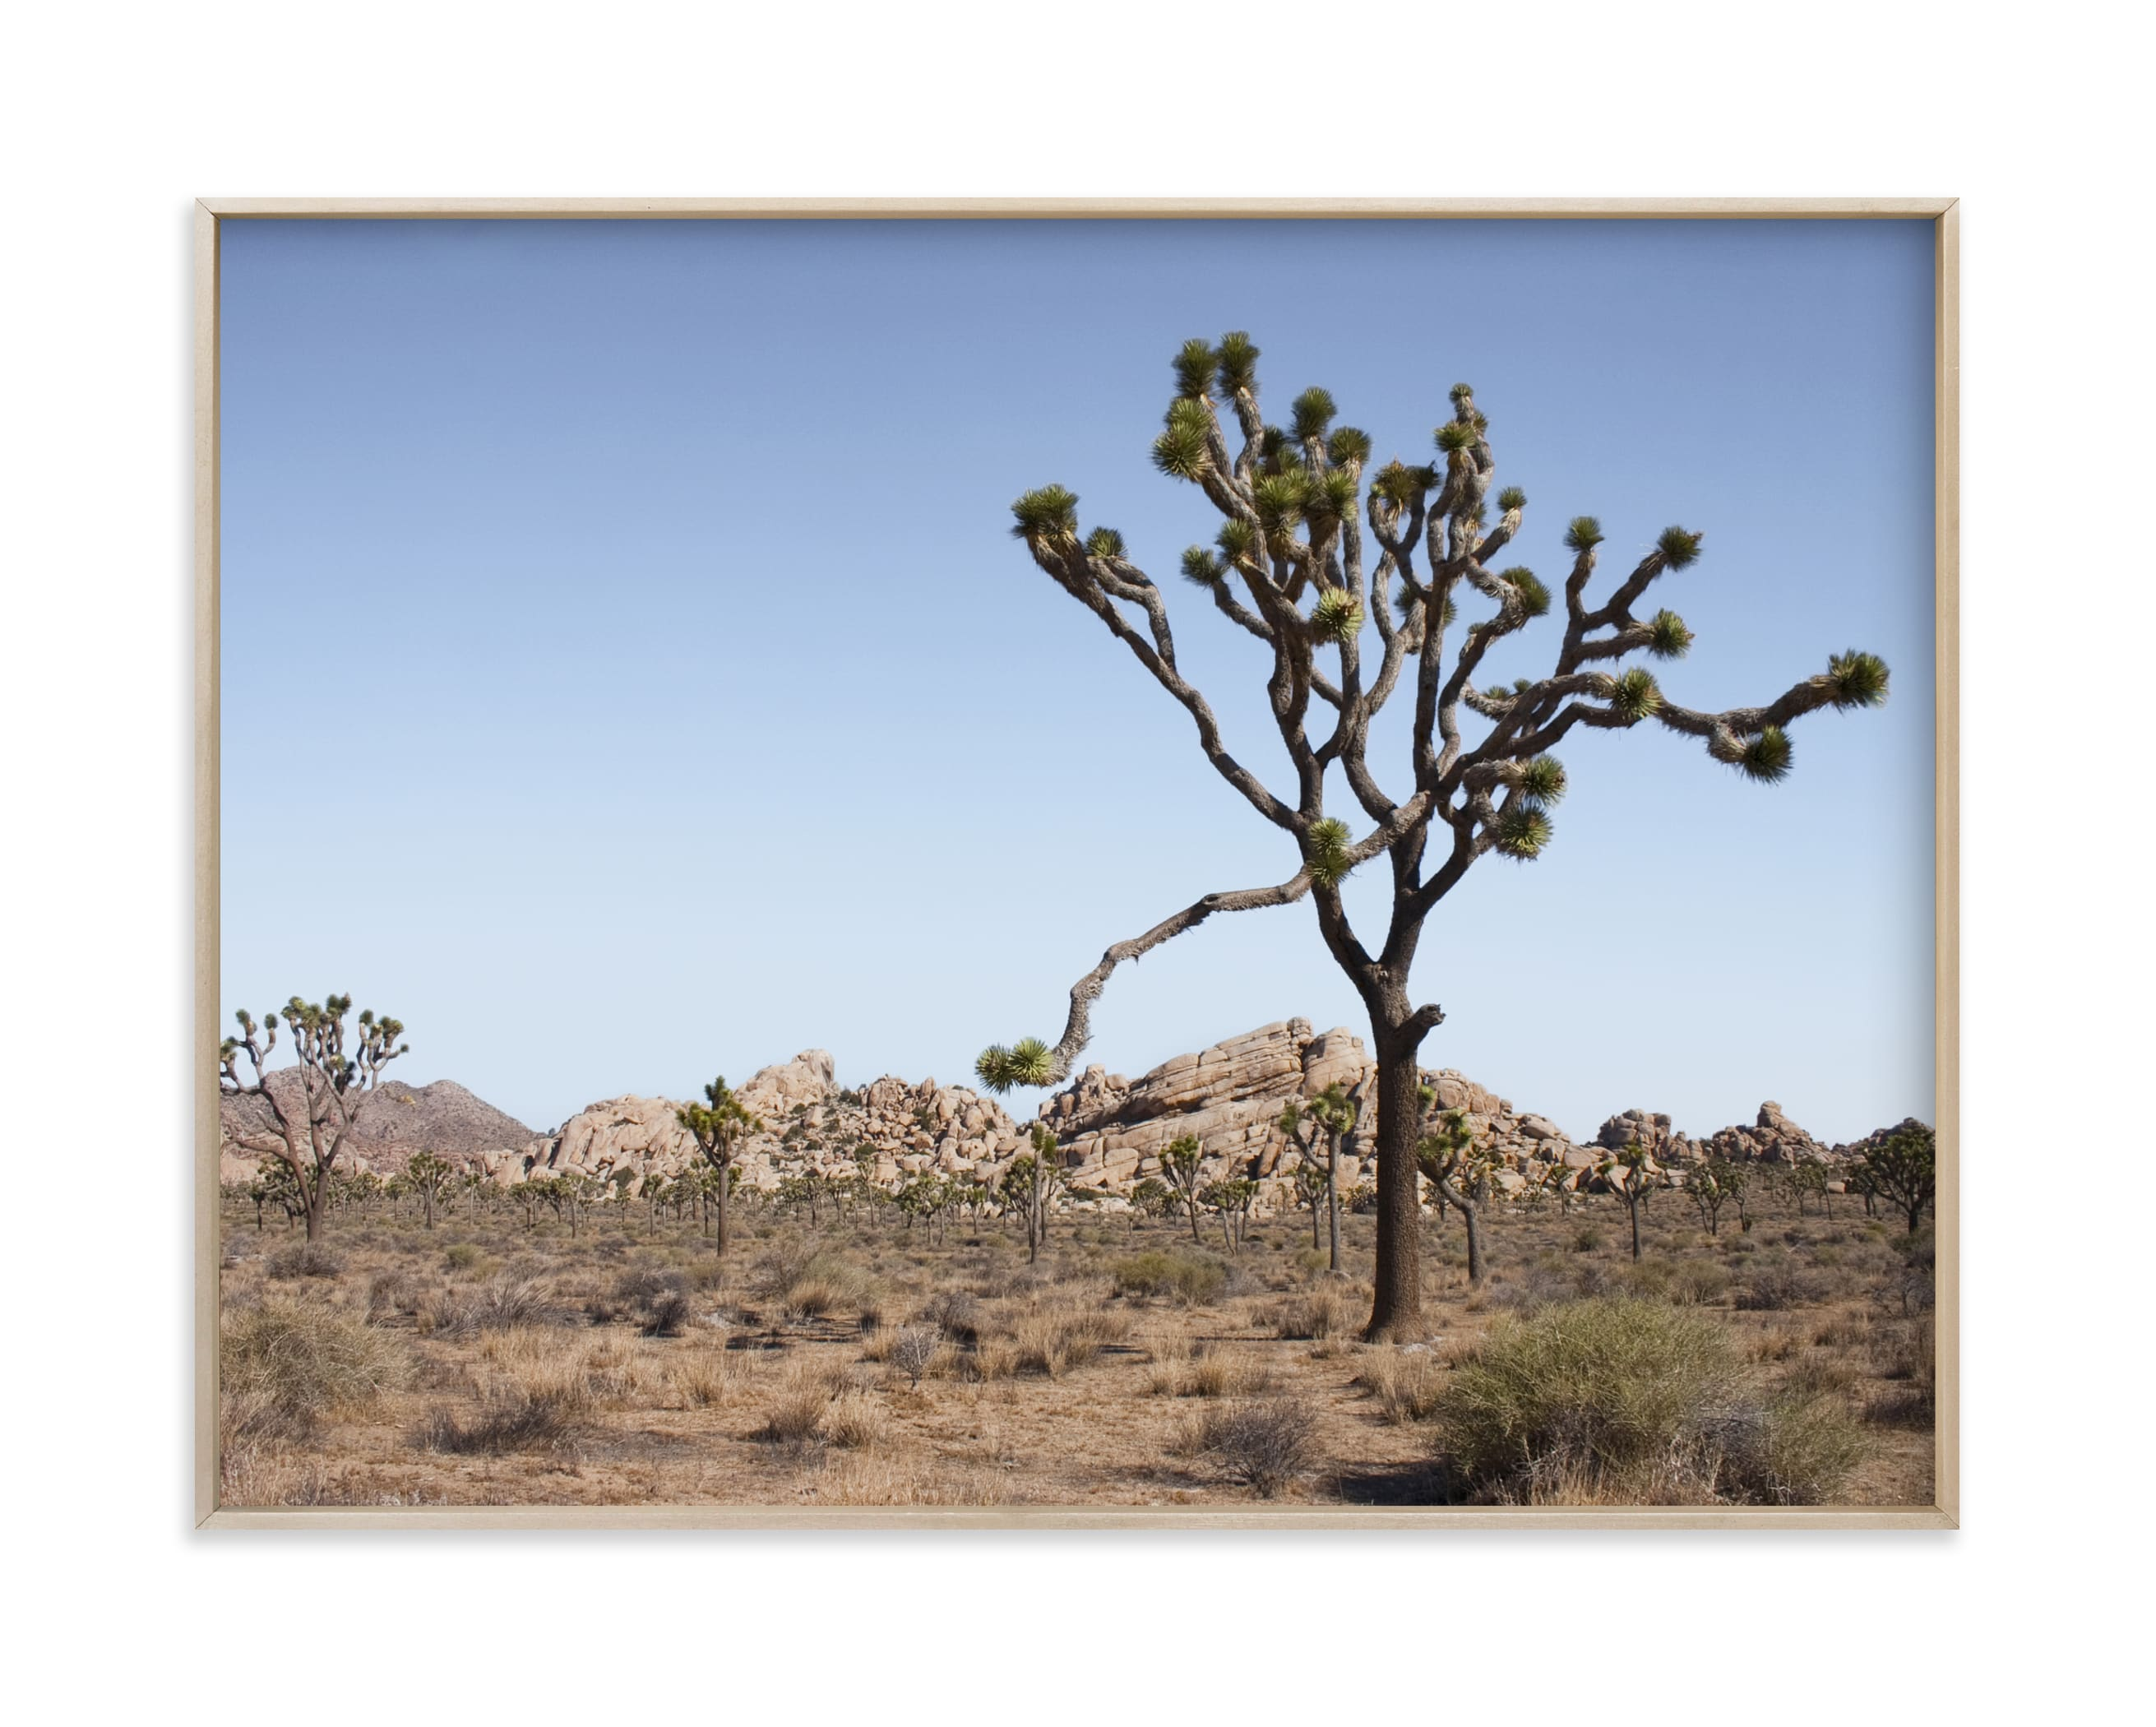 """Joshua Tree With Rock Formation in"" - Limited Edition Art Print by Kathy Van Torne in beautiful frame options and a variety of sizes."